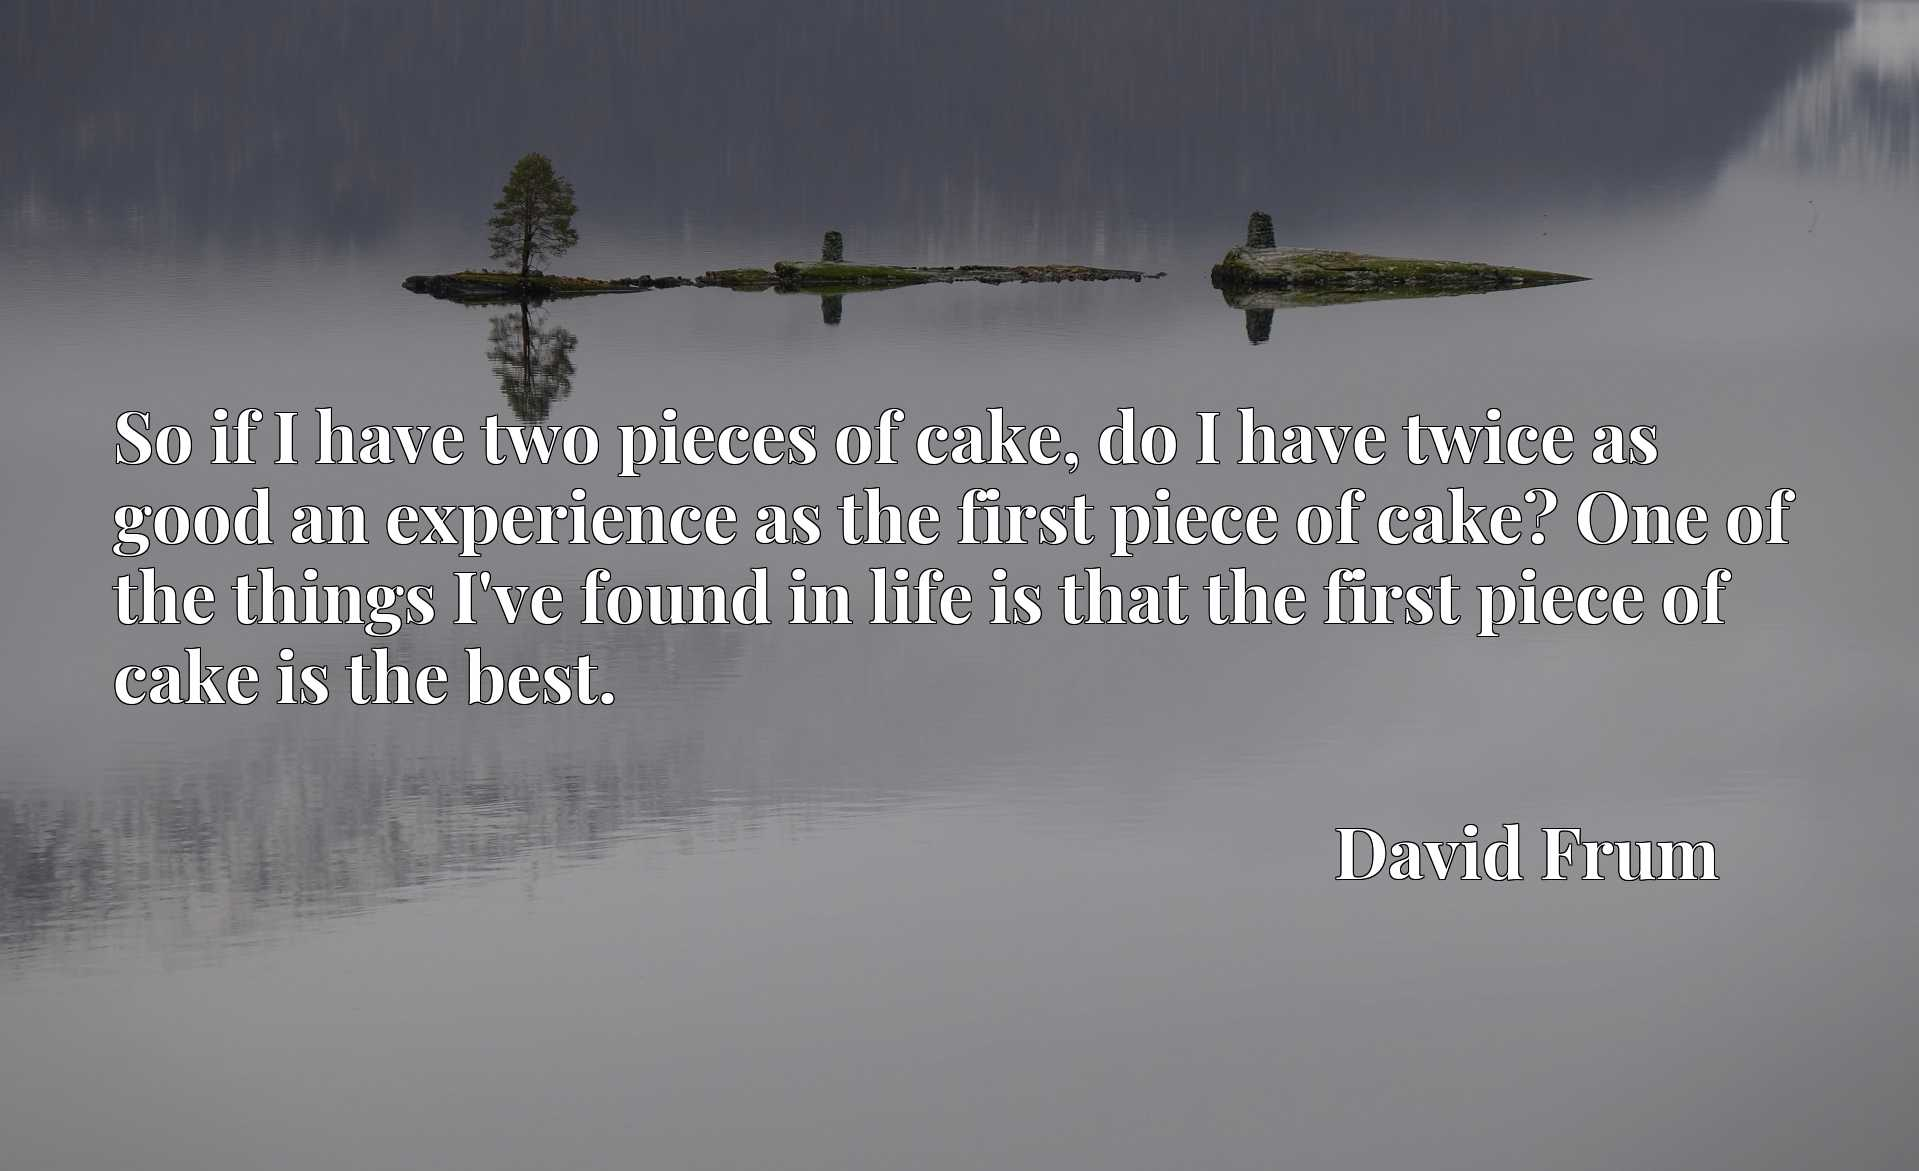 So if I have two pieces of cake, do I have twice as good an experience as the first piece of cake? One of the things I've found in life is that the first piece of cake is the best.